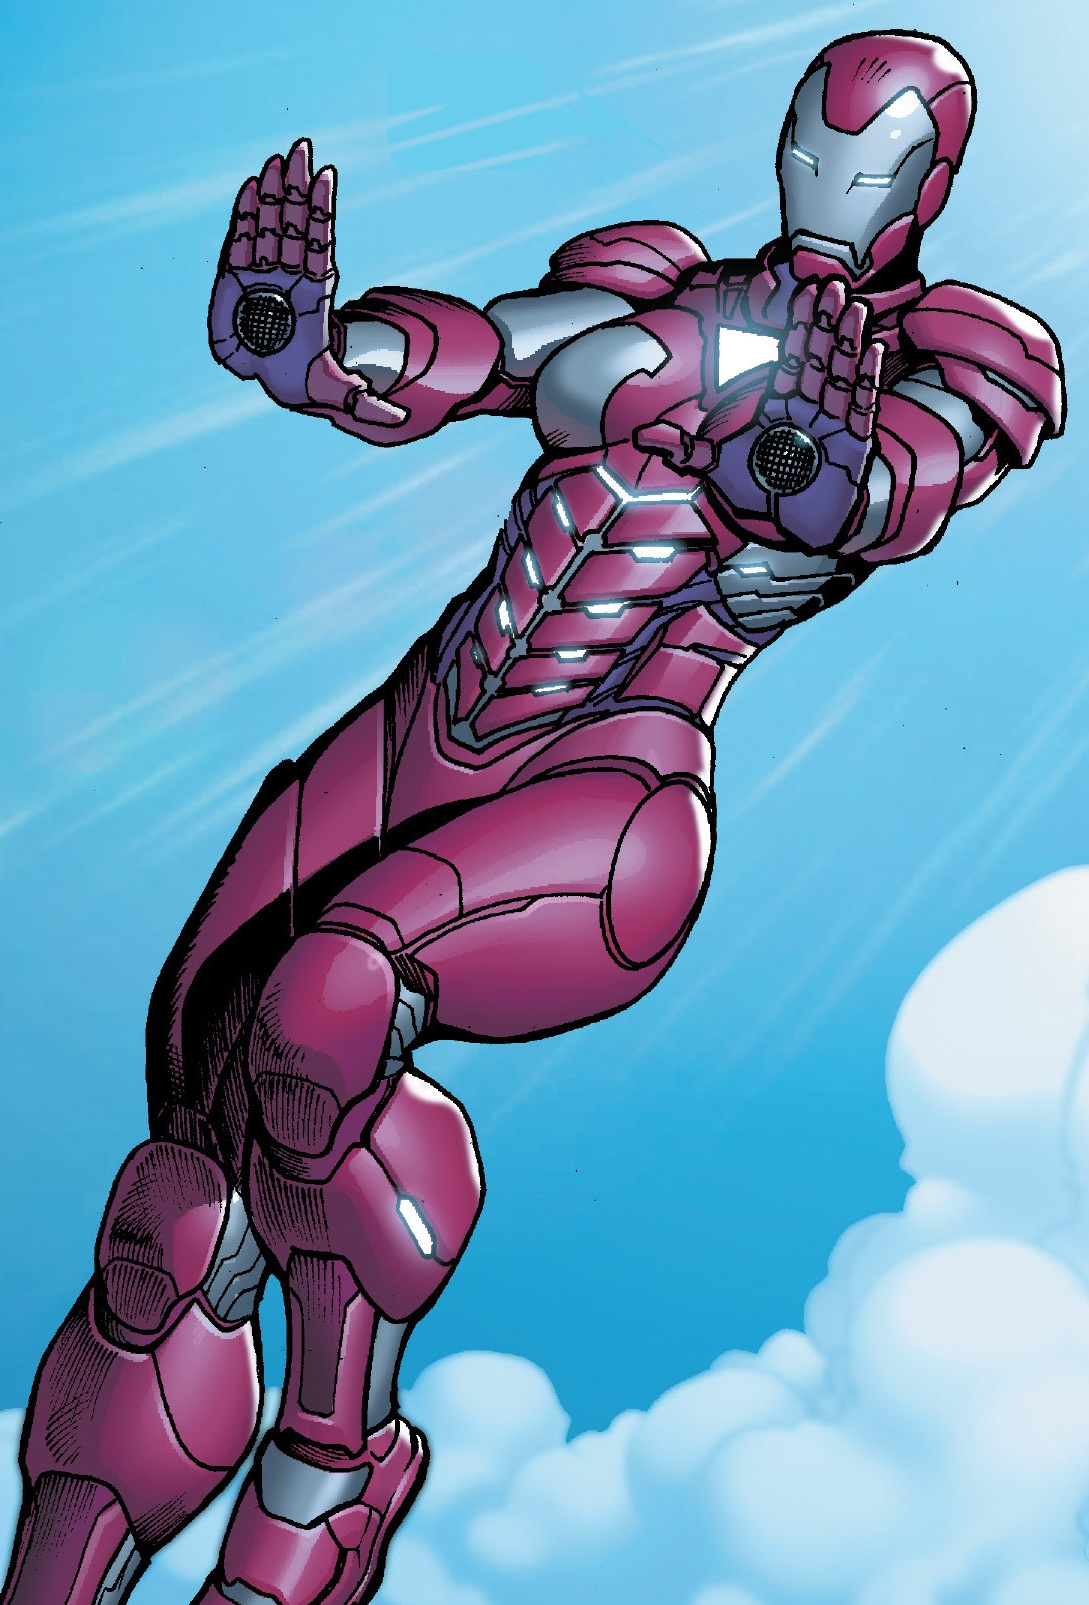 The New Iron Man Is A 15-Year-Old African-American Girl Who Gets Into MIT